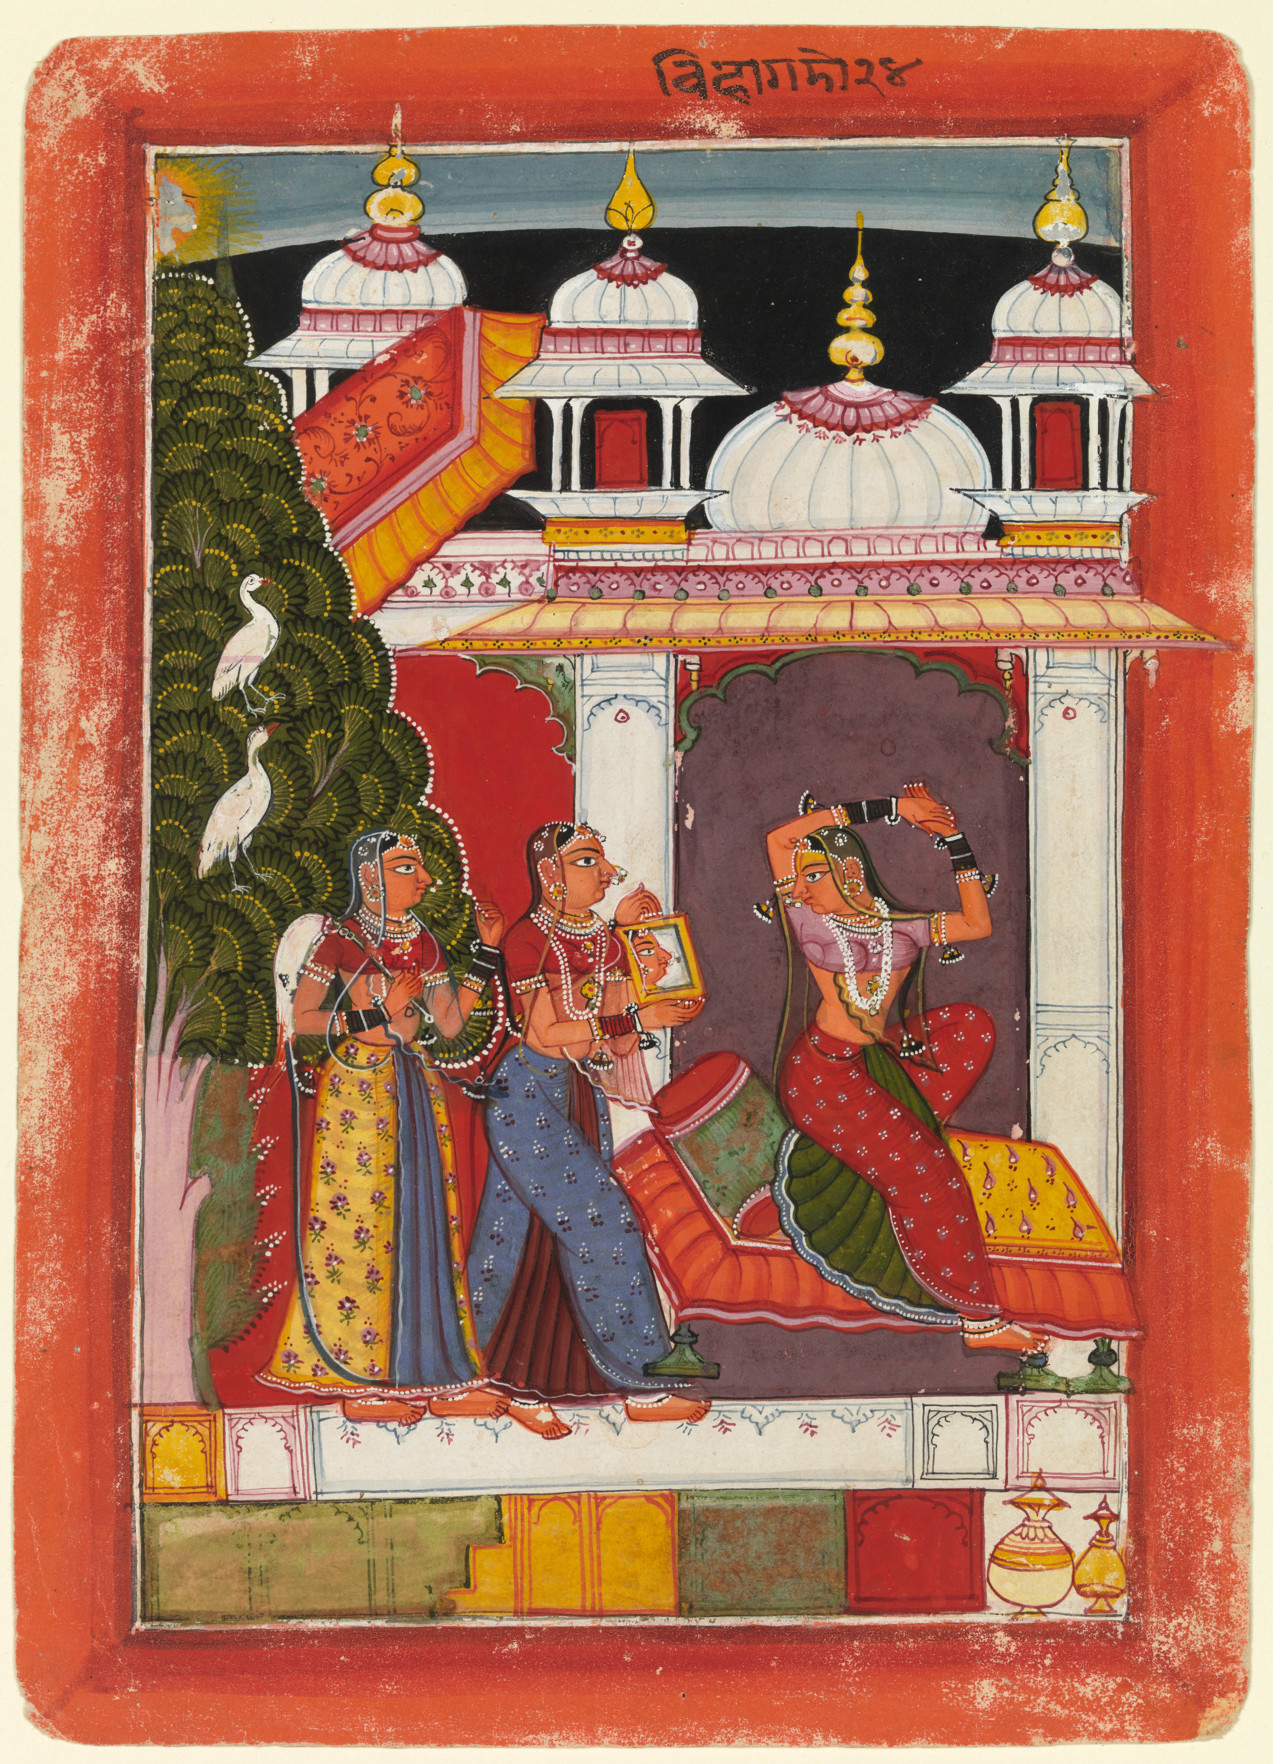 Unknown (Rajput,Indian), Behag Ragini, Page from a Dispersed Ragamala set, ca. 1680. Opaque watercolor on paper, 8 5/8 x 6 1/4 in. Museum purchase, Karl E. Weston Memorial Fund. (73.1)